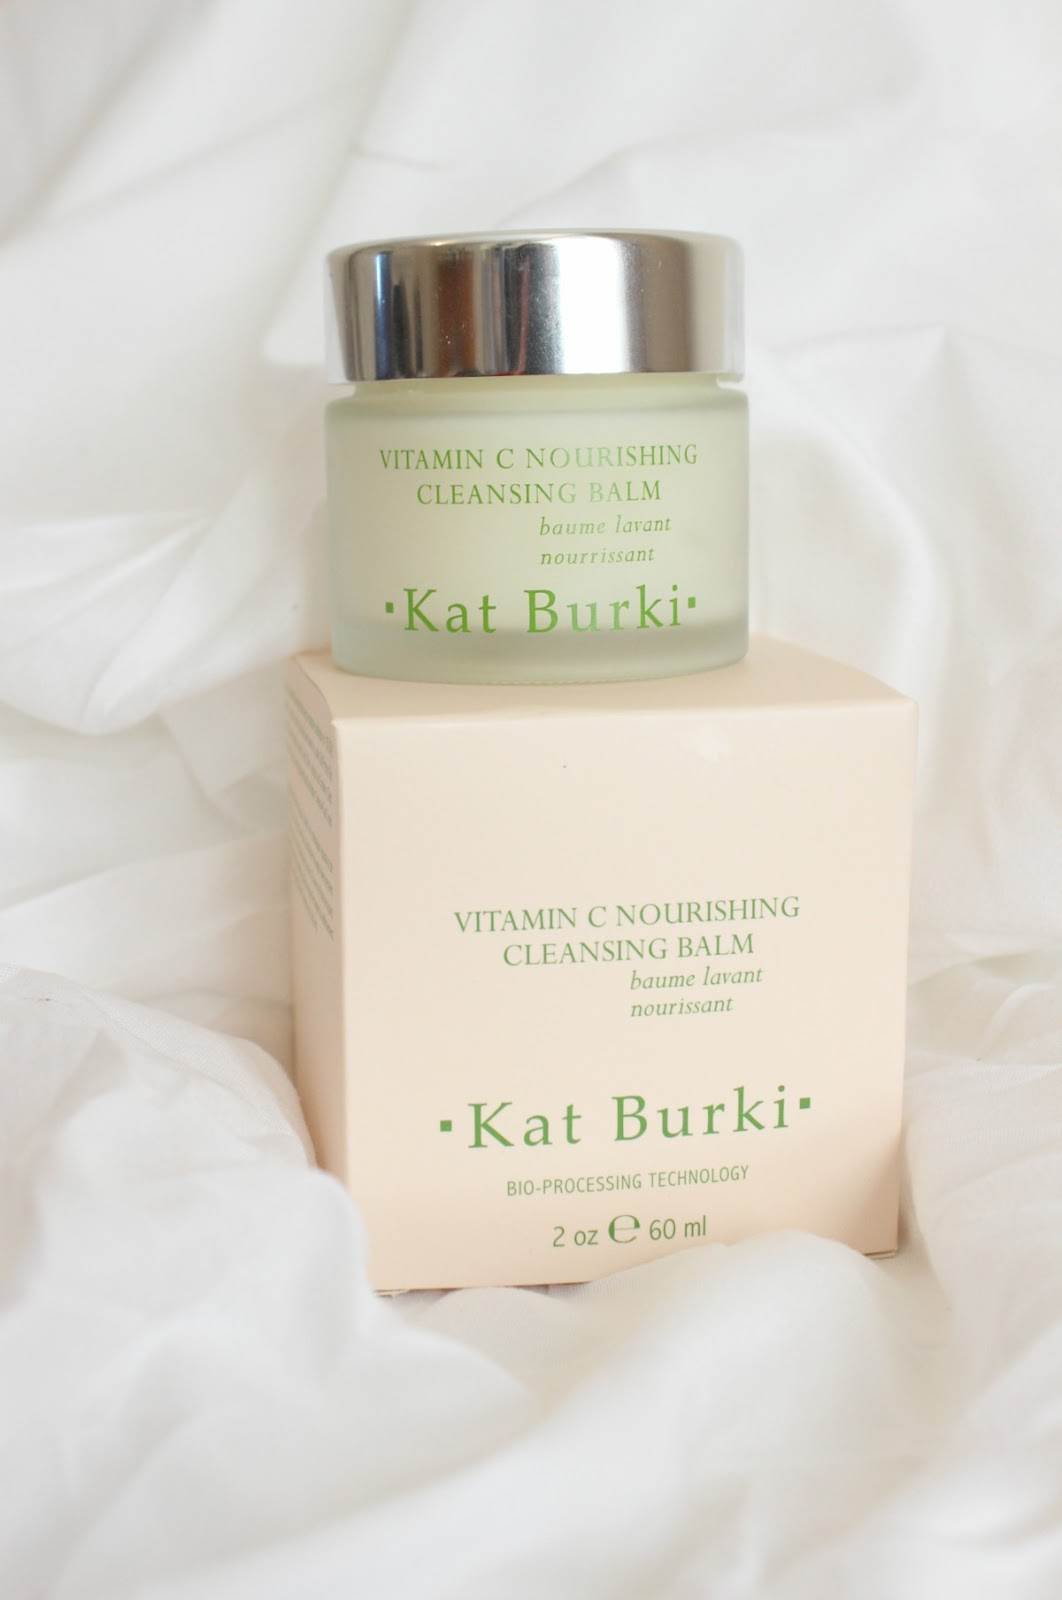 Kat Burki Vitamin C Nourishing Cleansing Balm Review